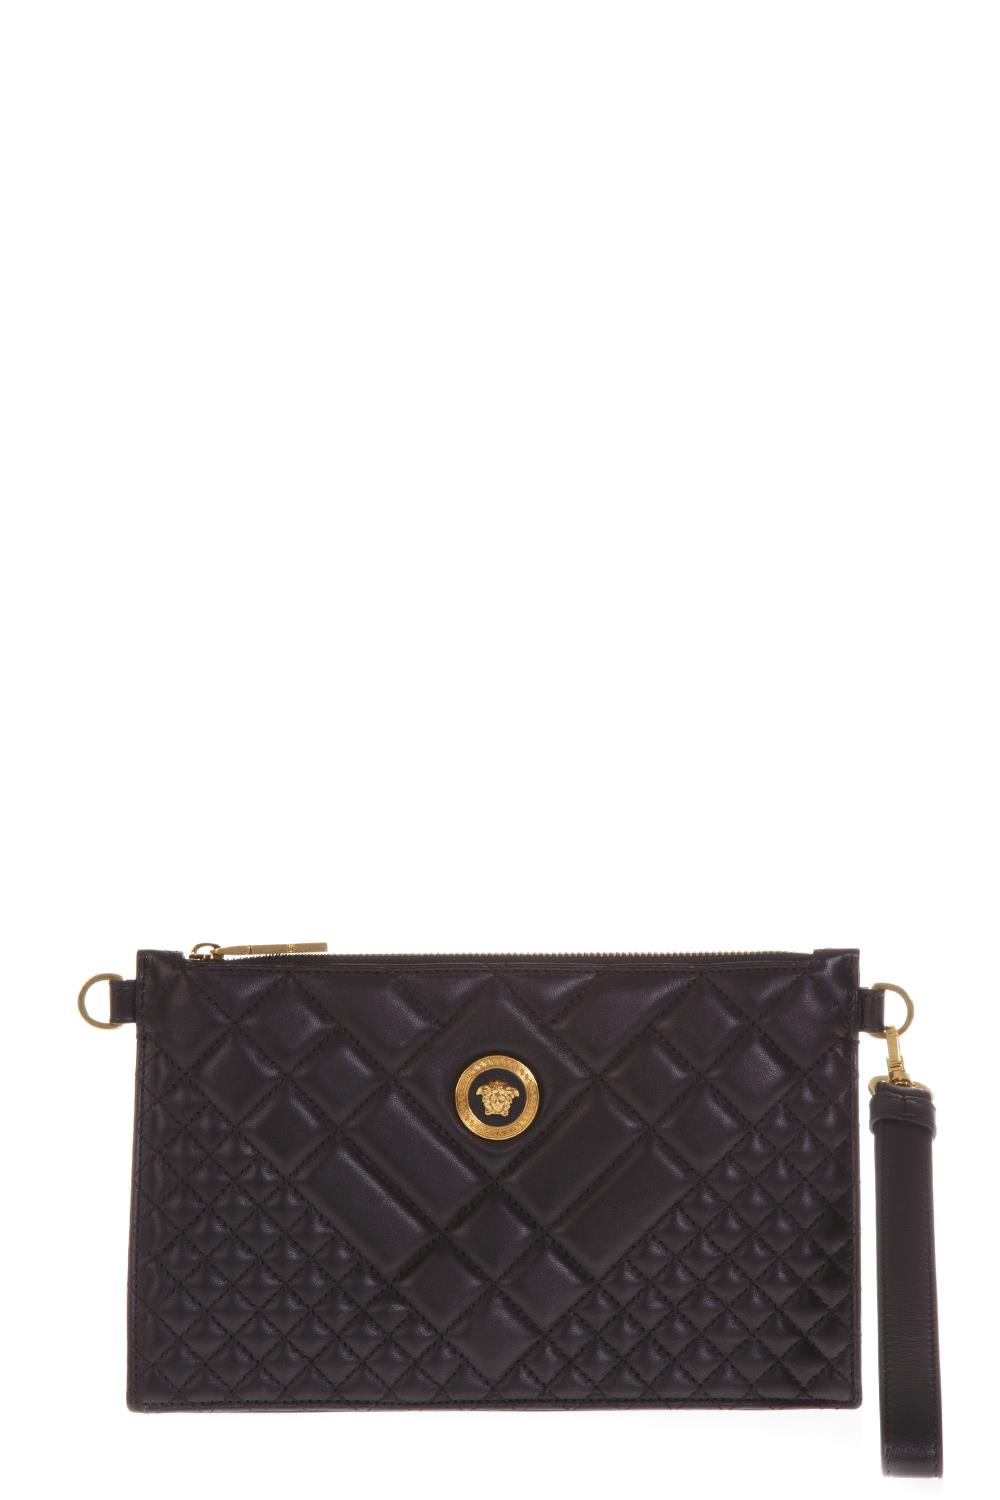 362f4a920ff8 BLACK QUILTED LEATHER CLUTCH WITH MEDUSA LOGO FW 2018 - VERSACE - Boutique  Galiano